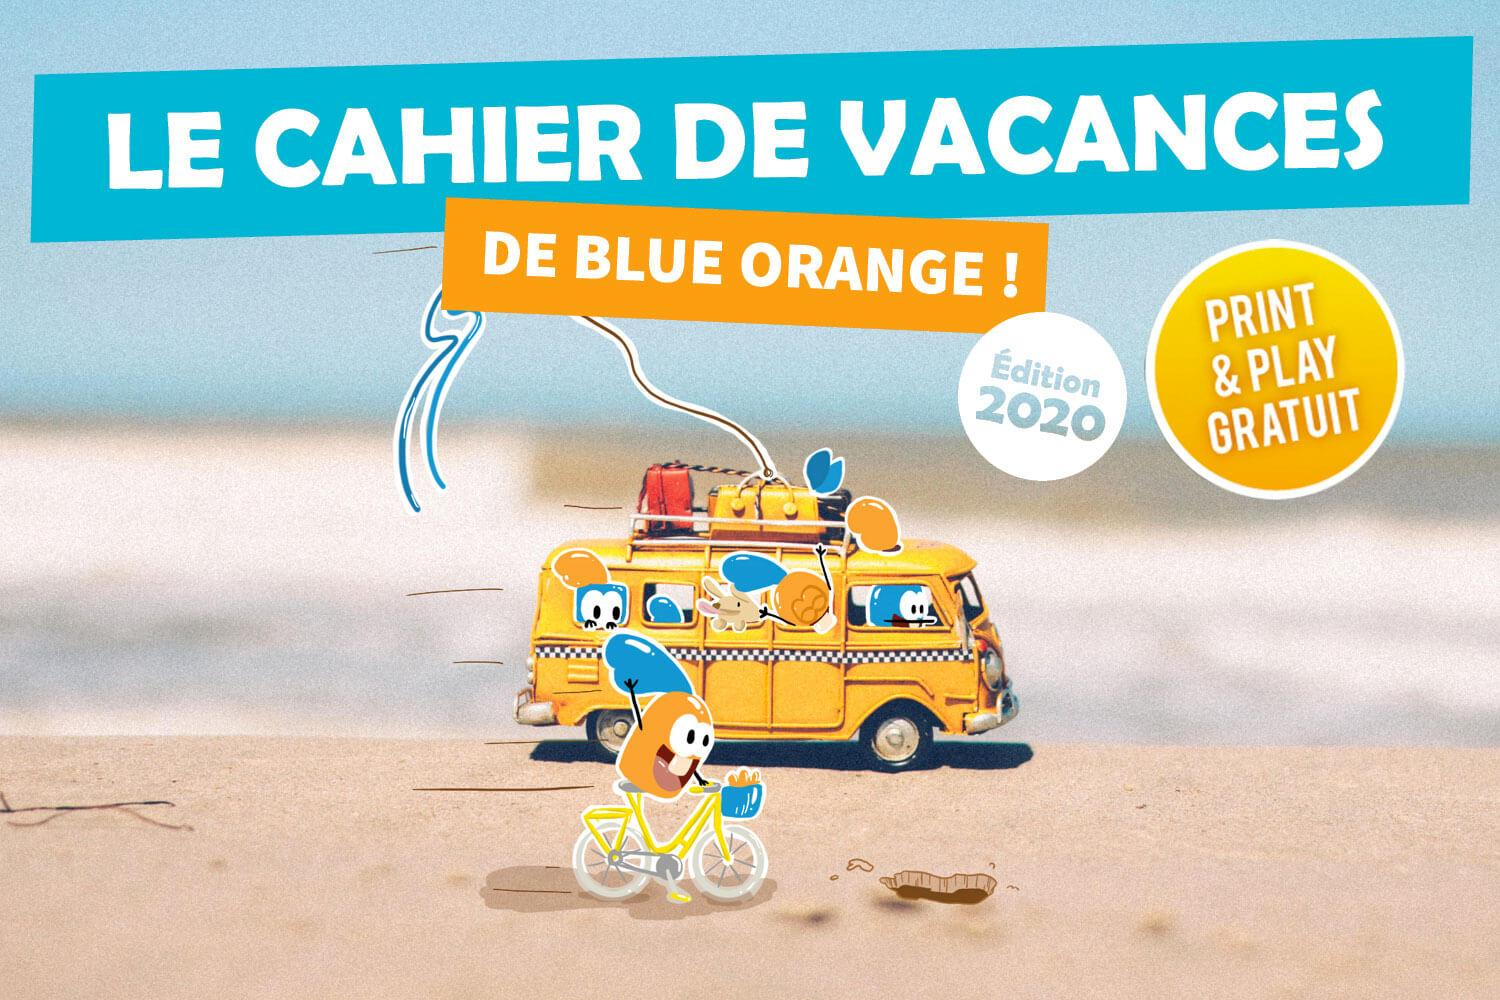 Le cahier de vacances 2020 de Blue Orange